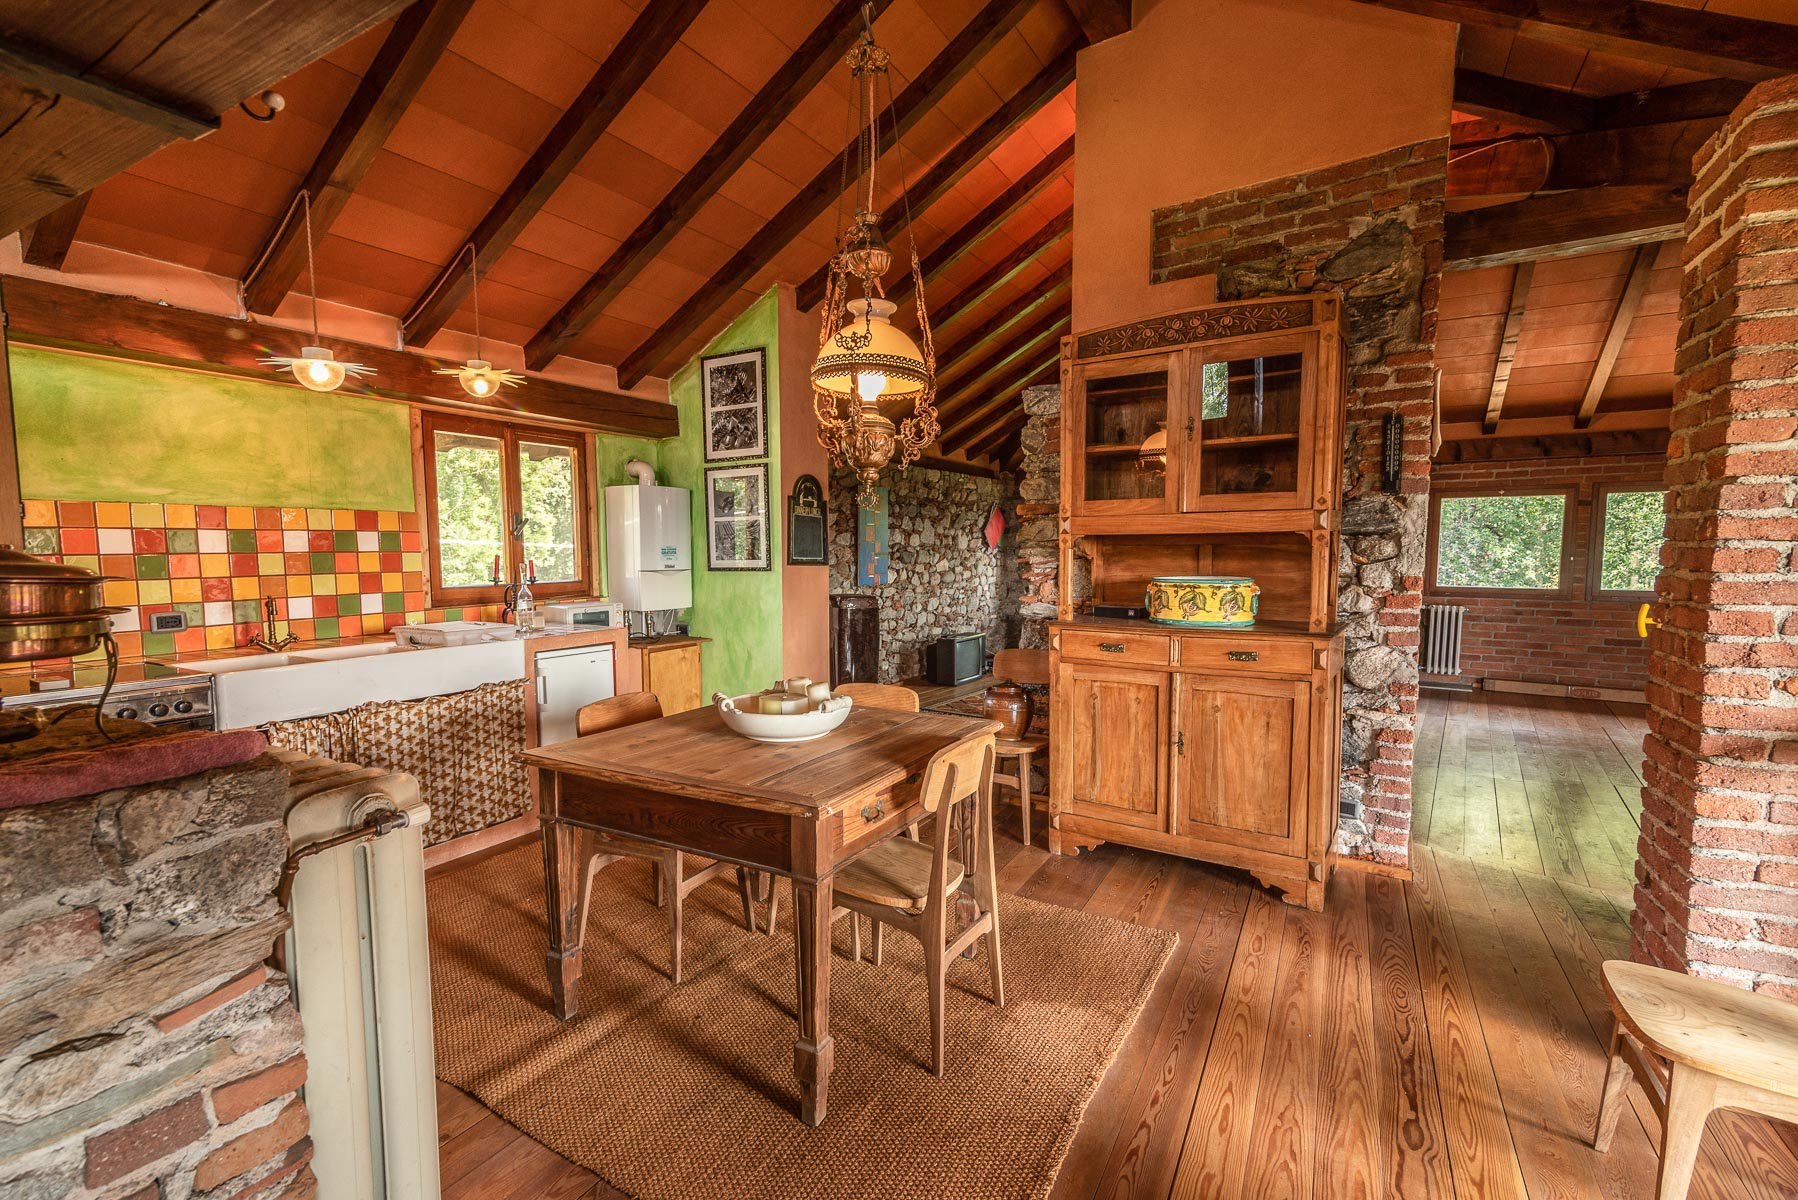 Trait house of land for sale in Paruzzaro- large kitchen